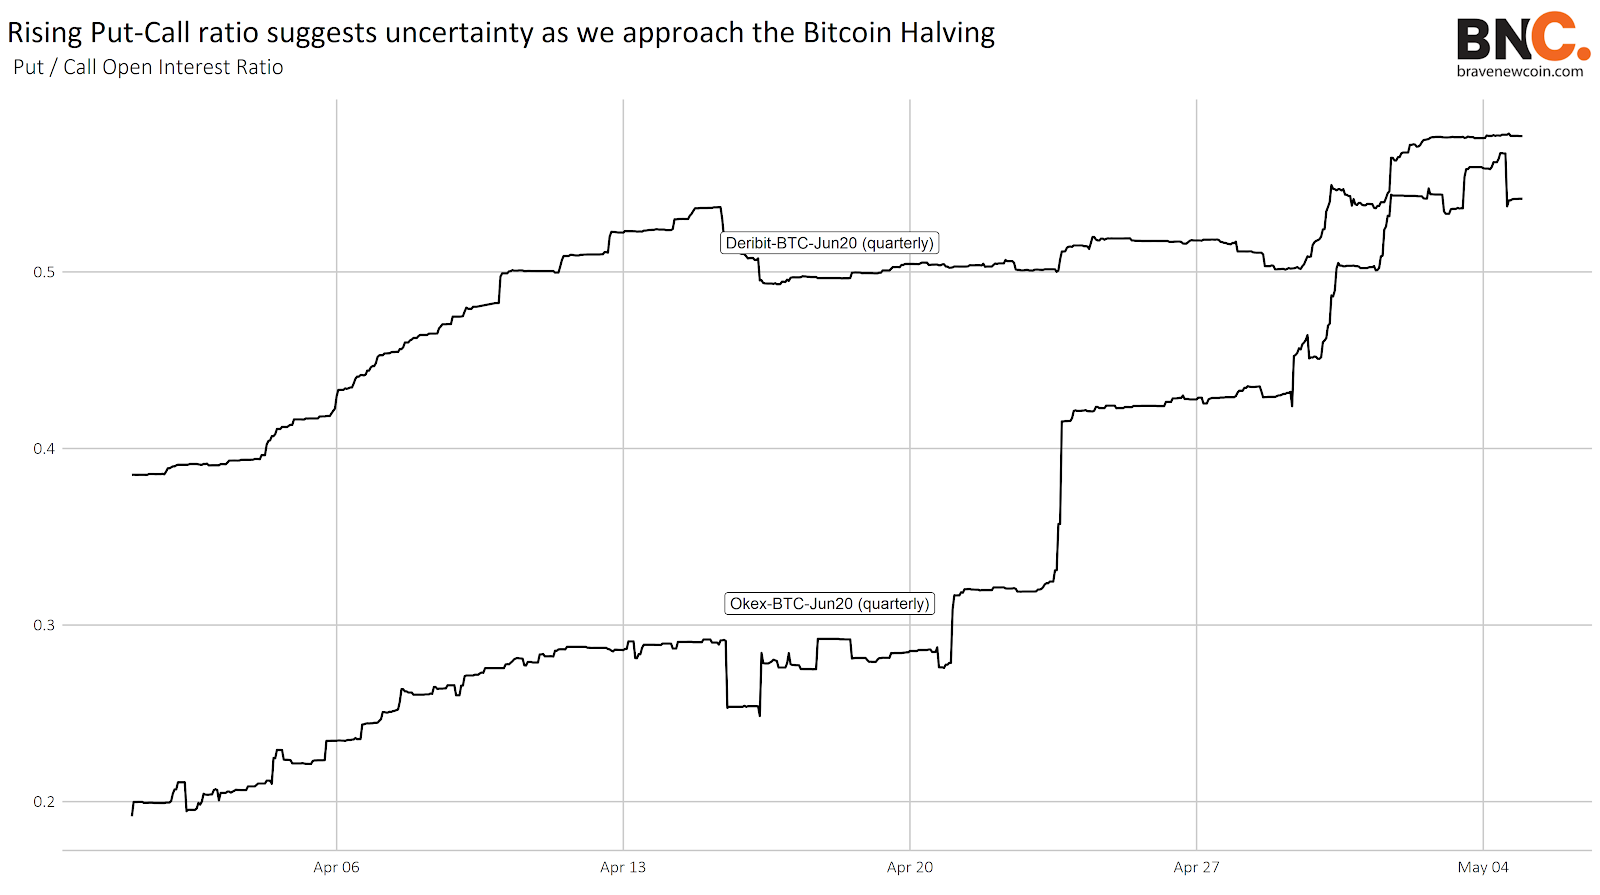 Data Snippet - Increased interest in out-of-the-money Bitcoin options echoes uncertainty surrounding halving effect (5)